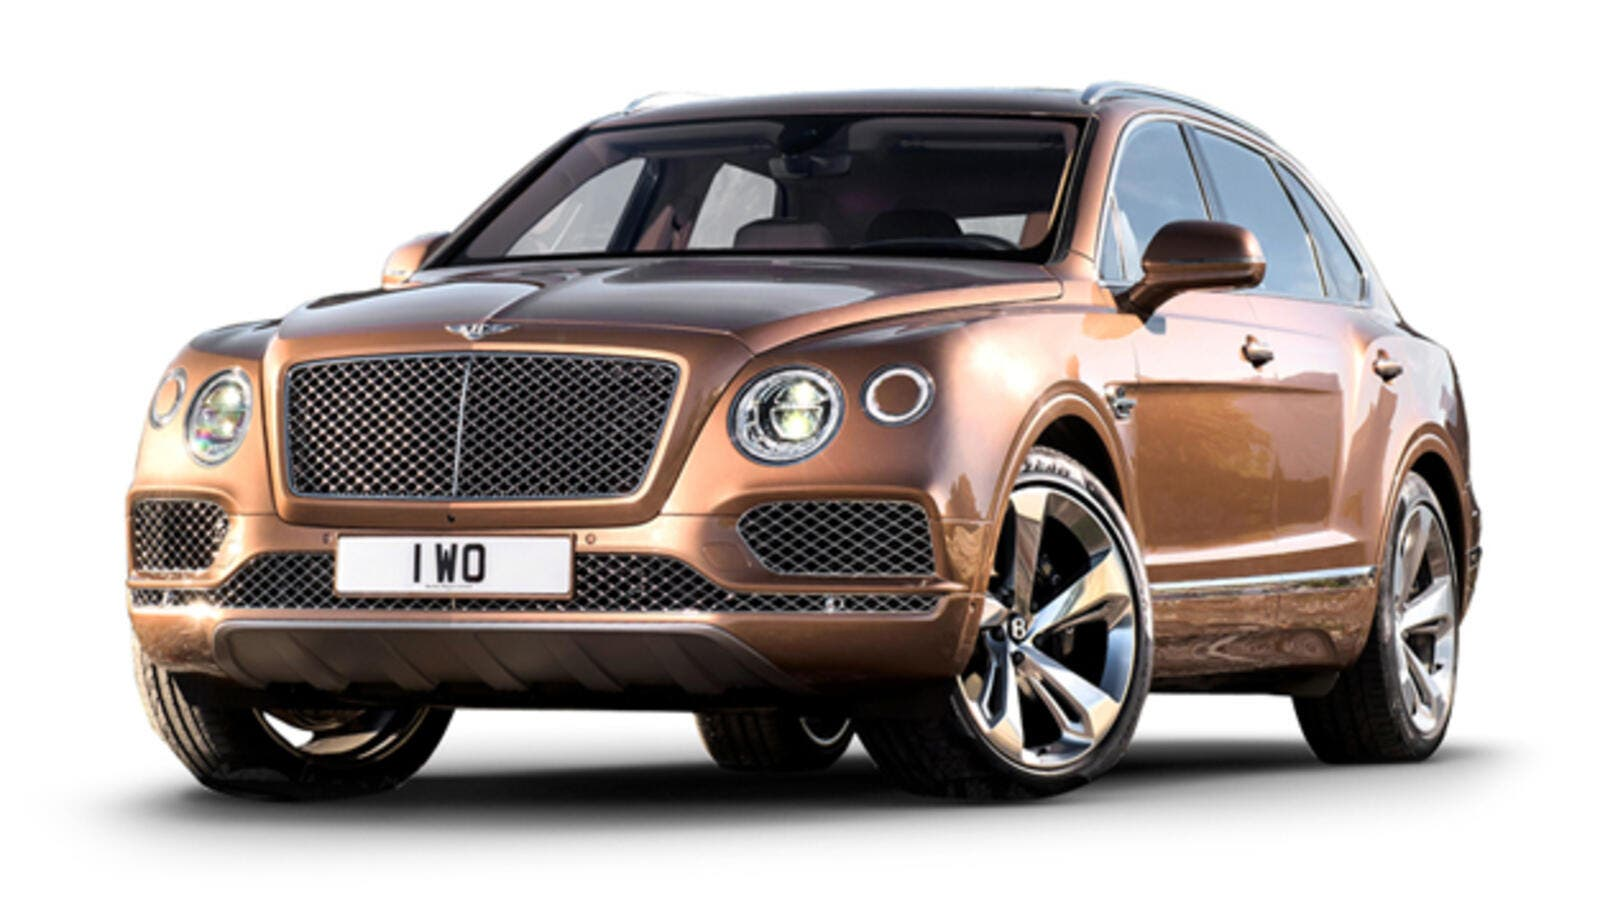 The Bentayga is Bentley's luxurious SUV offering, starting at $230,000 without any of the options.  (Car & Driver)